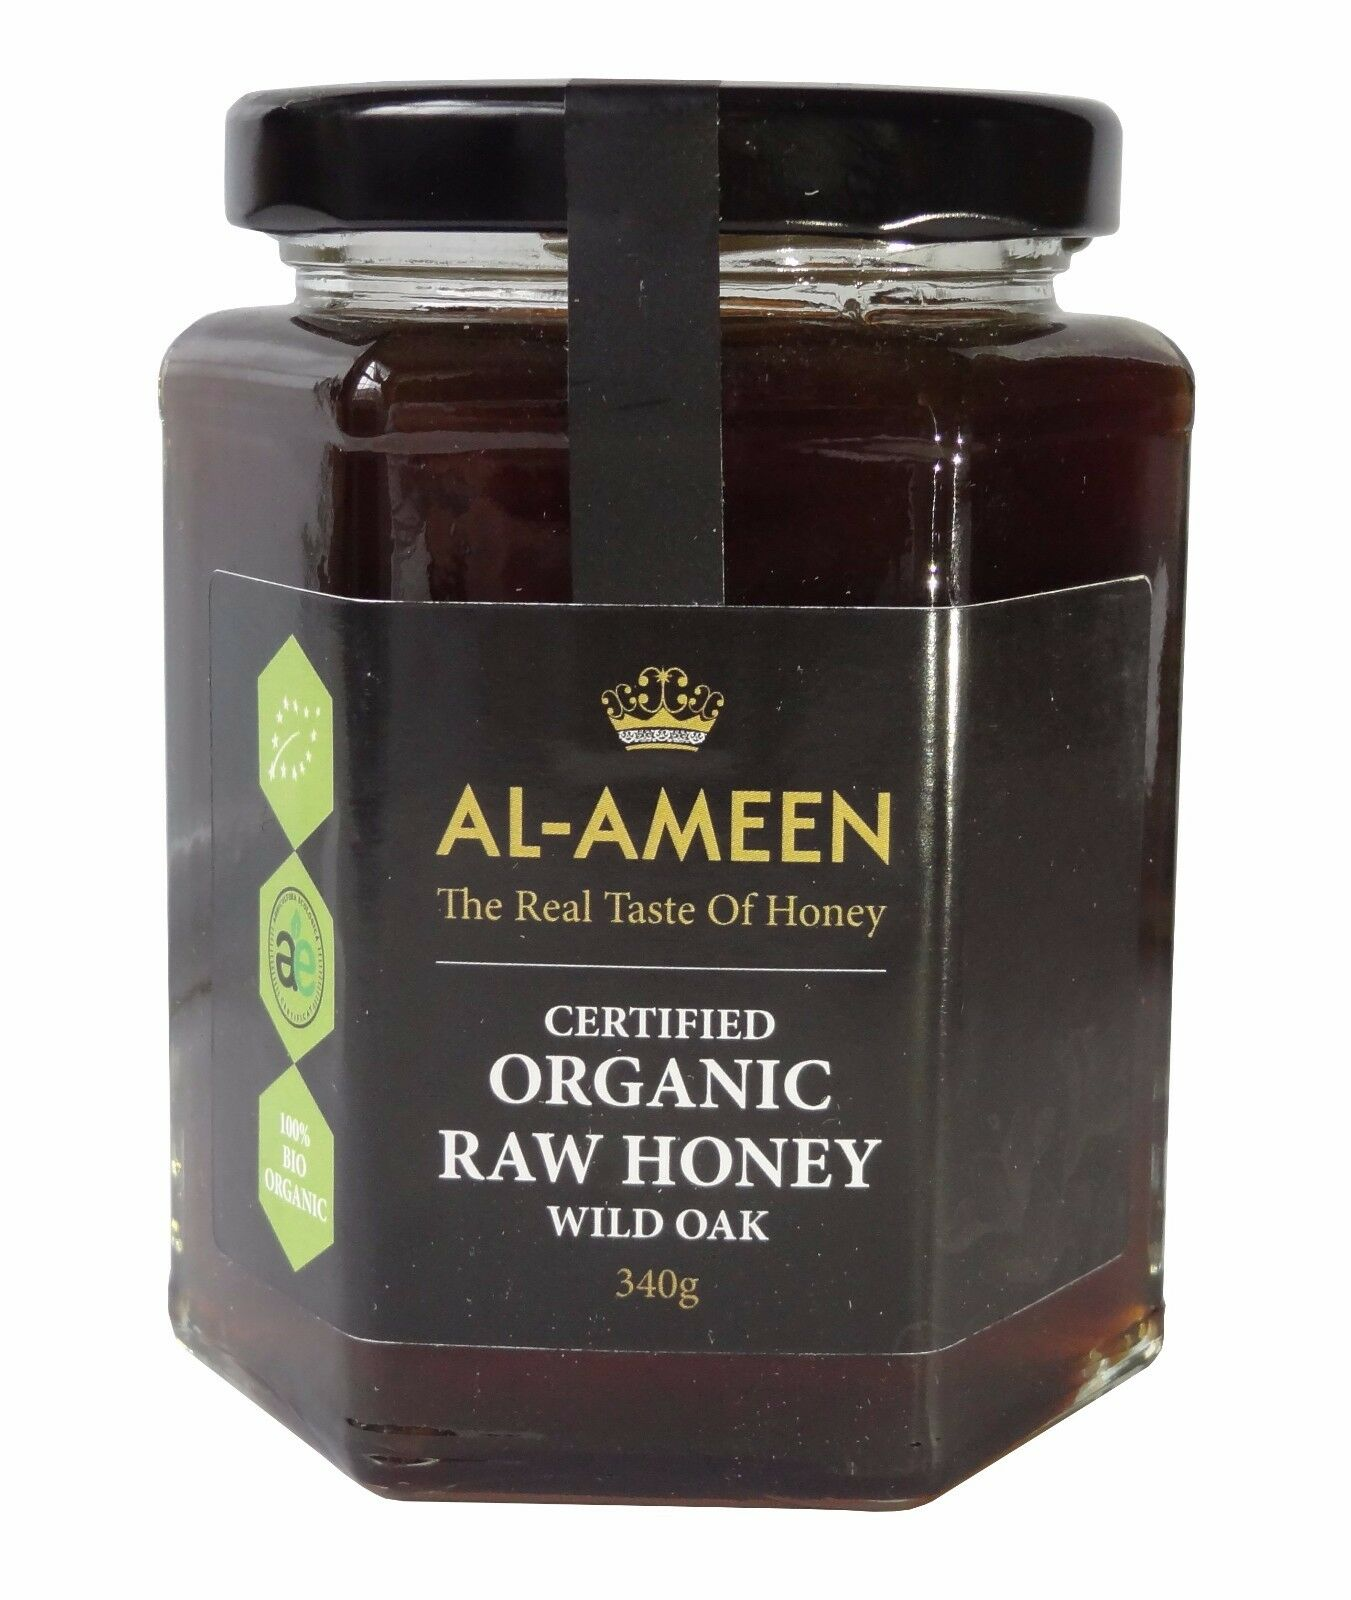 AL-AMEEN CERTIFIED ORGANIC WILD OAK HONEY 340g - REAL RAW honey